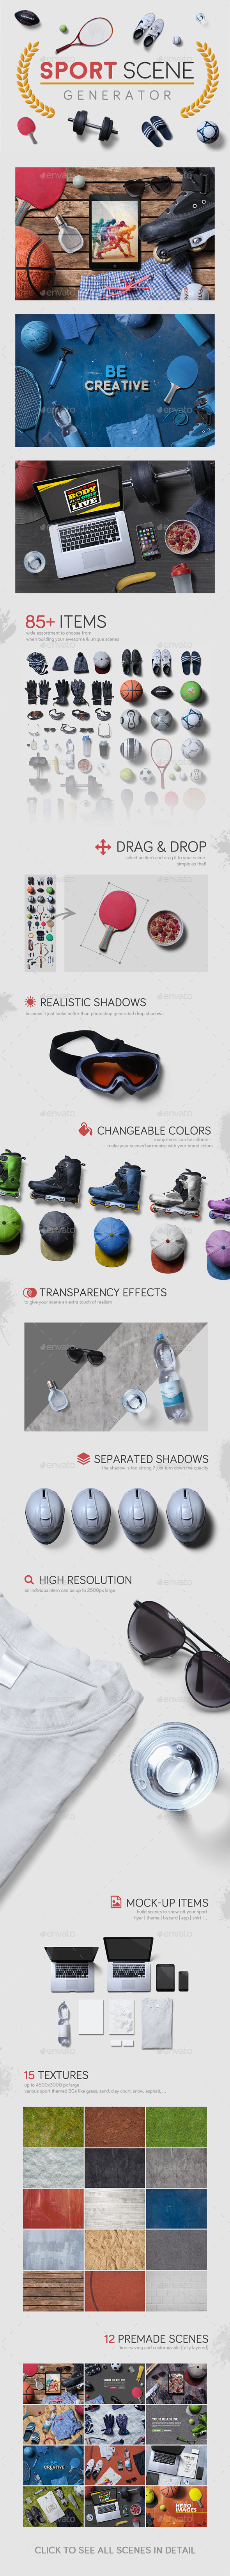 Sport Scene Generator by h3stocks | GraphicRiver